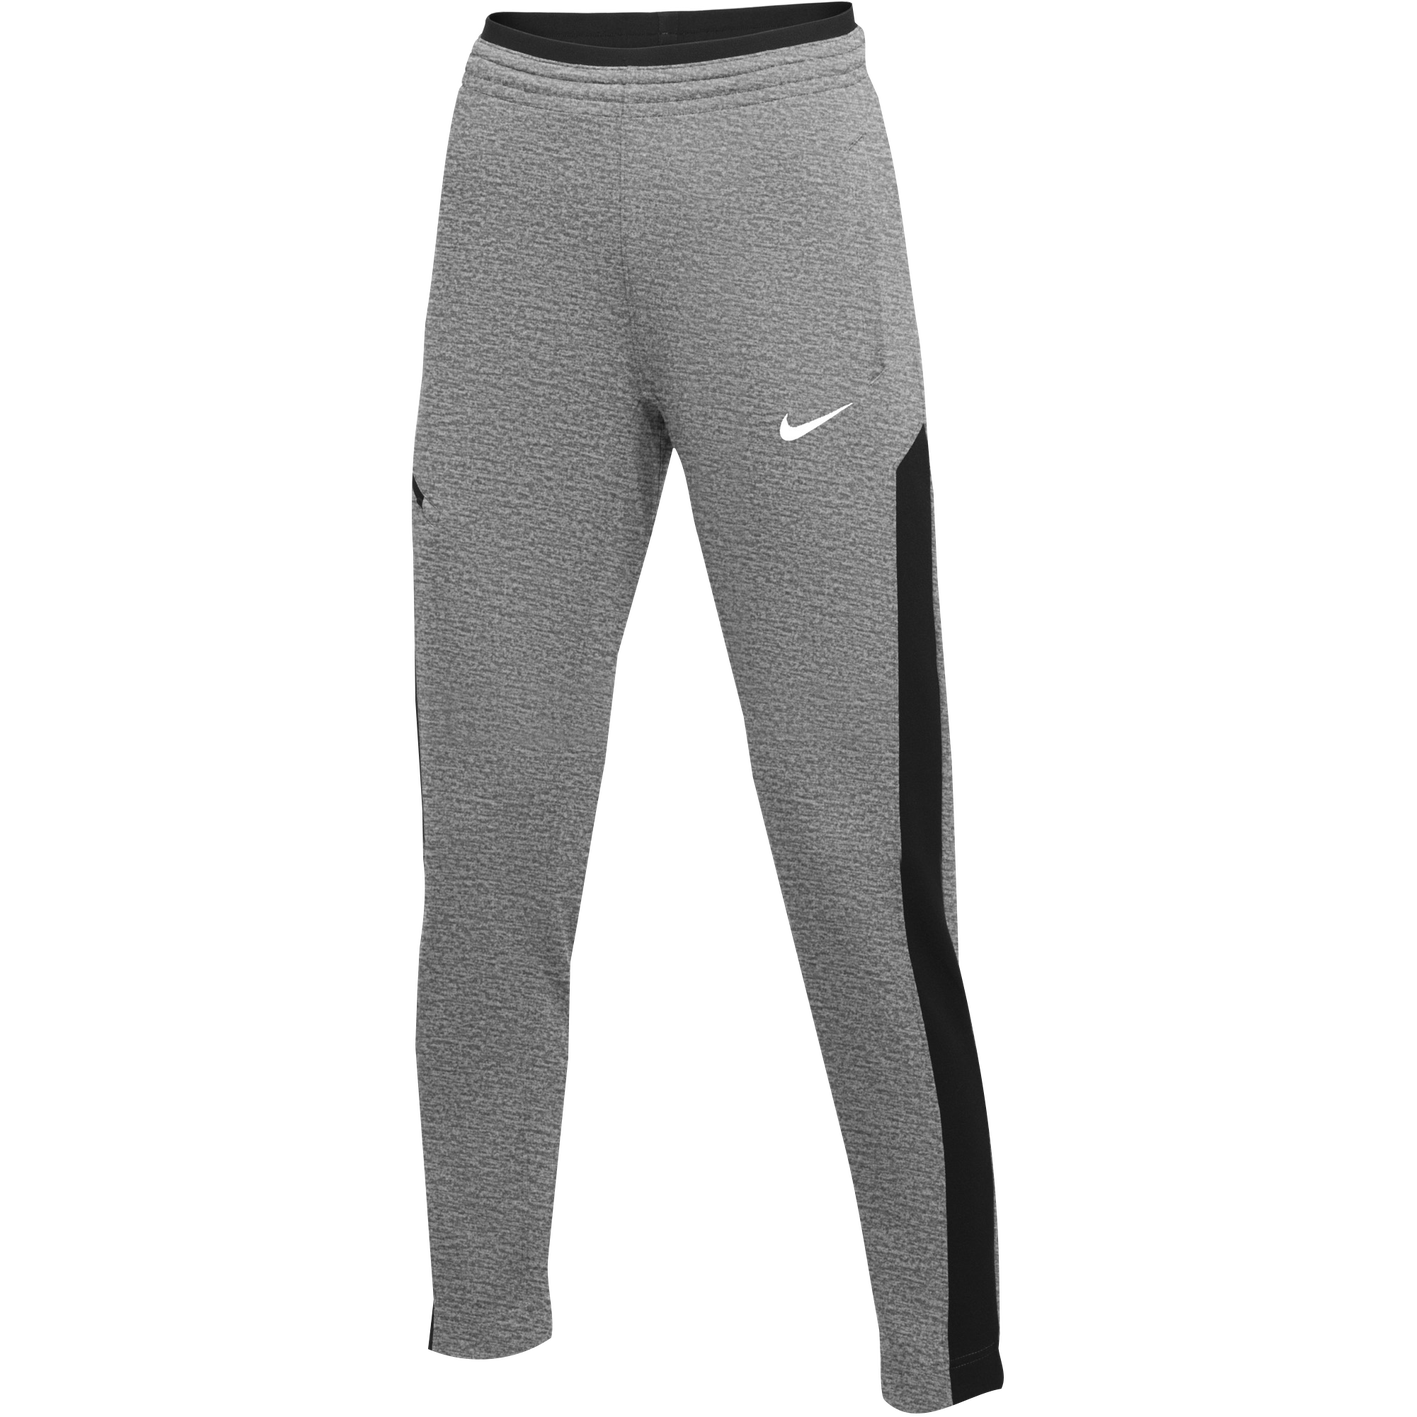 28b65b35ed Nike Team Dry Showtime Pants - Women's - Basketball - Clothing ...